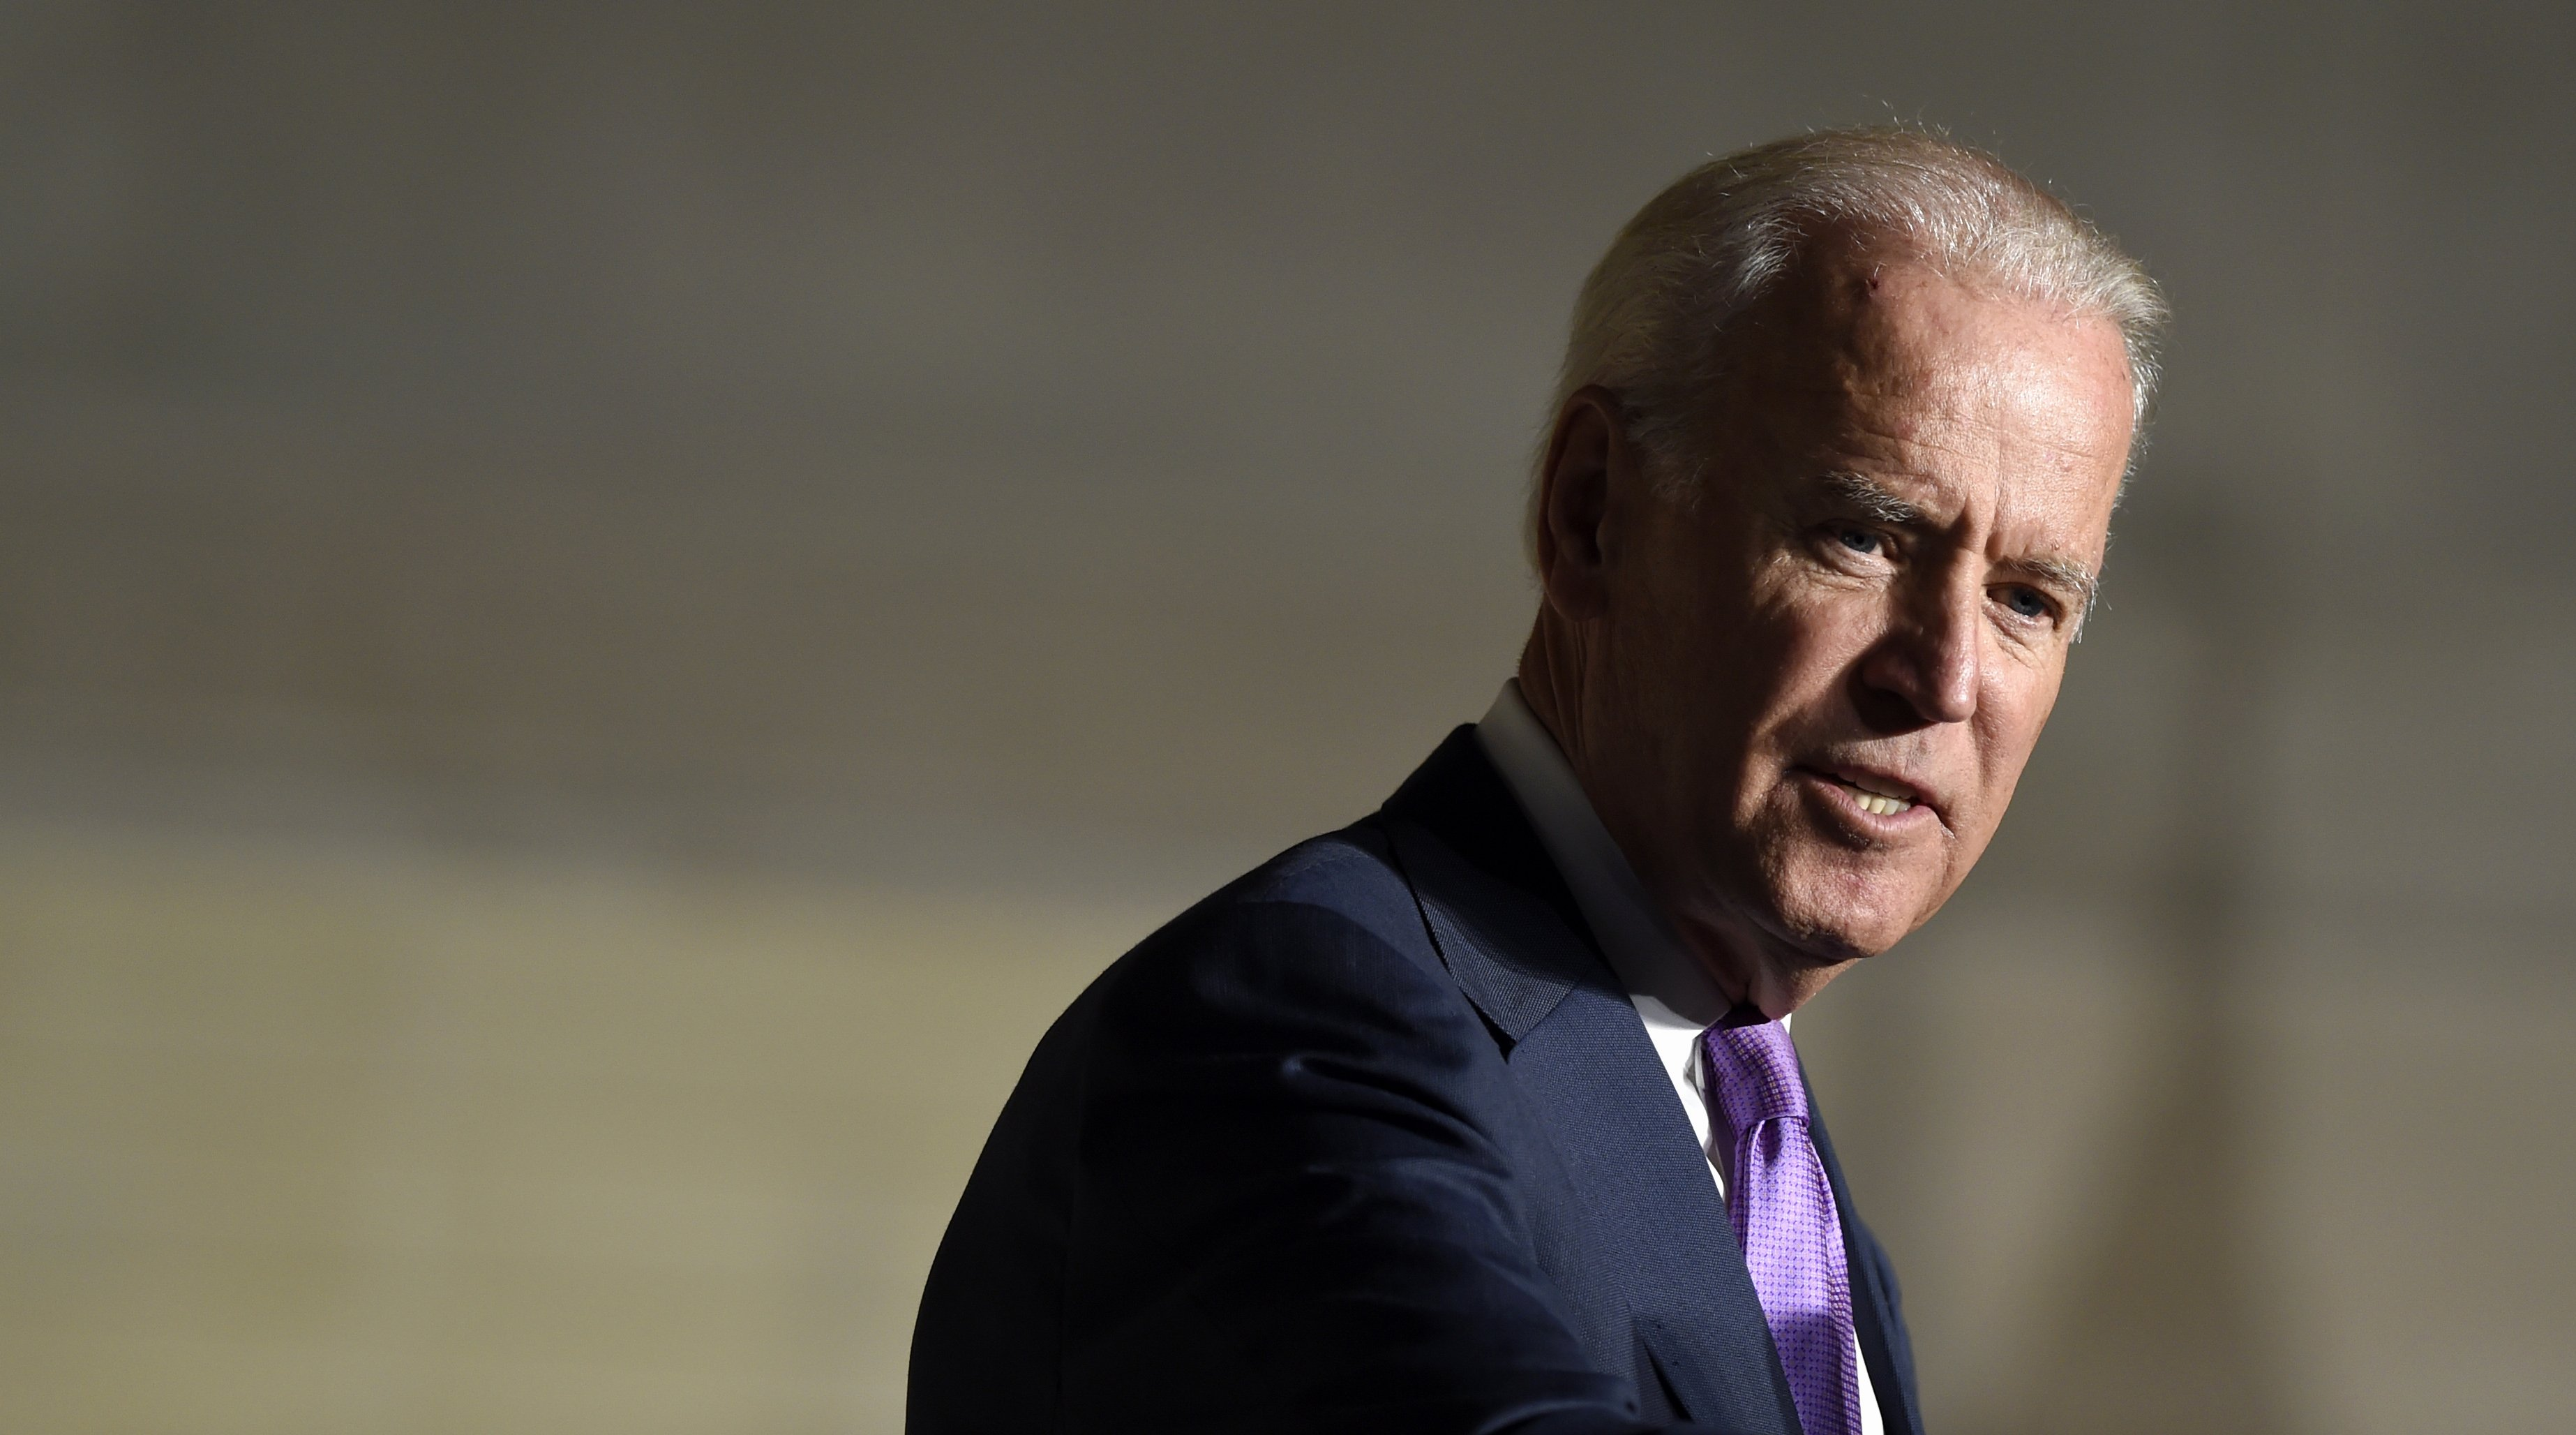 20 Years of Change: Joe Biden on the Violence Against Women Act